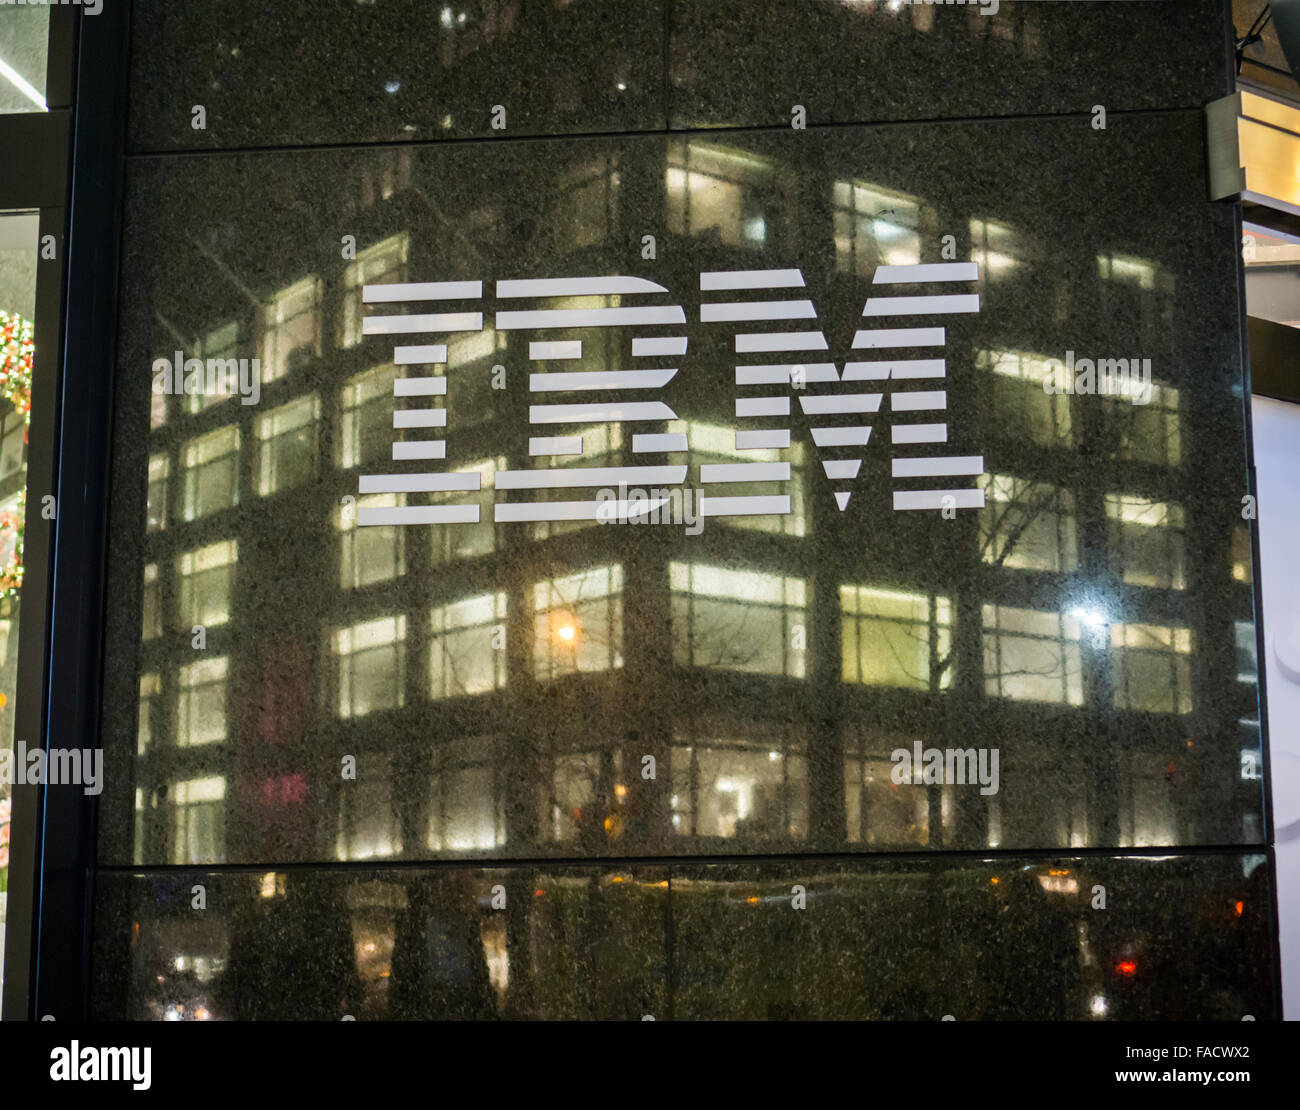 The IBM logo is seen on their